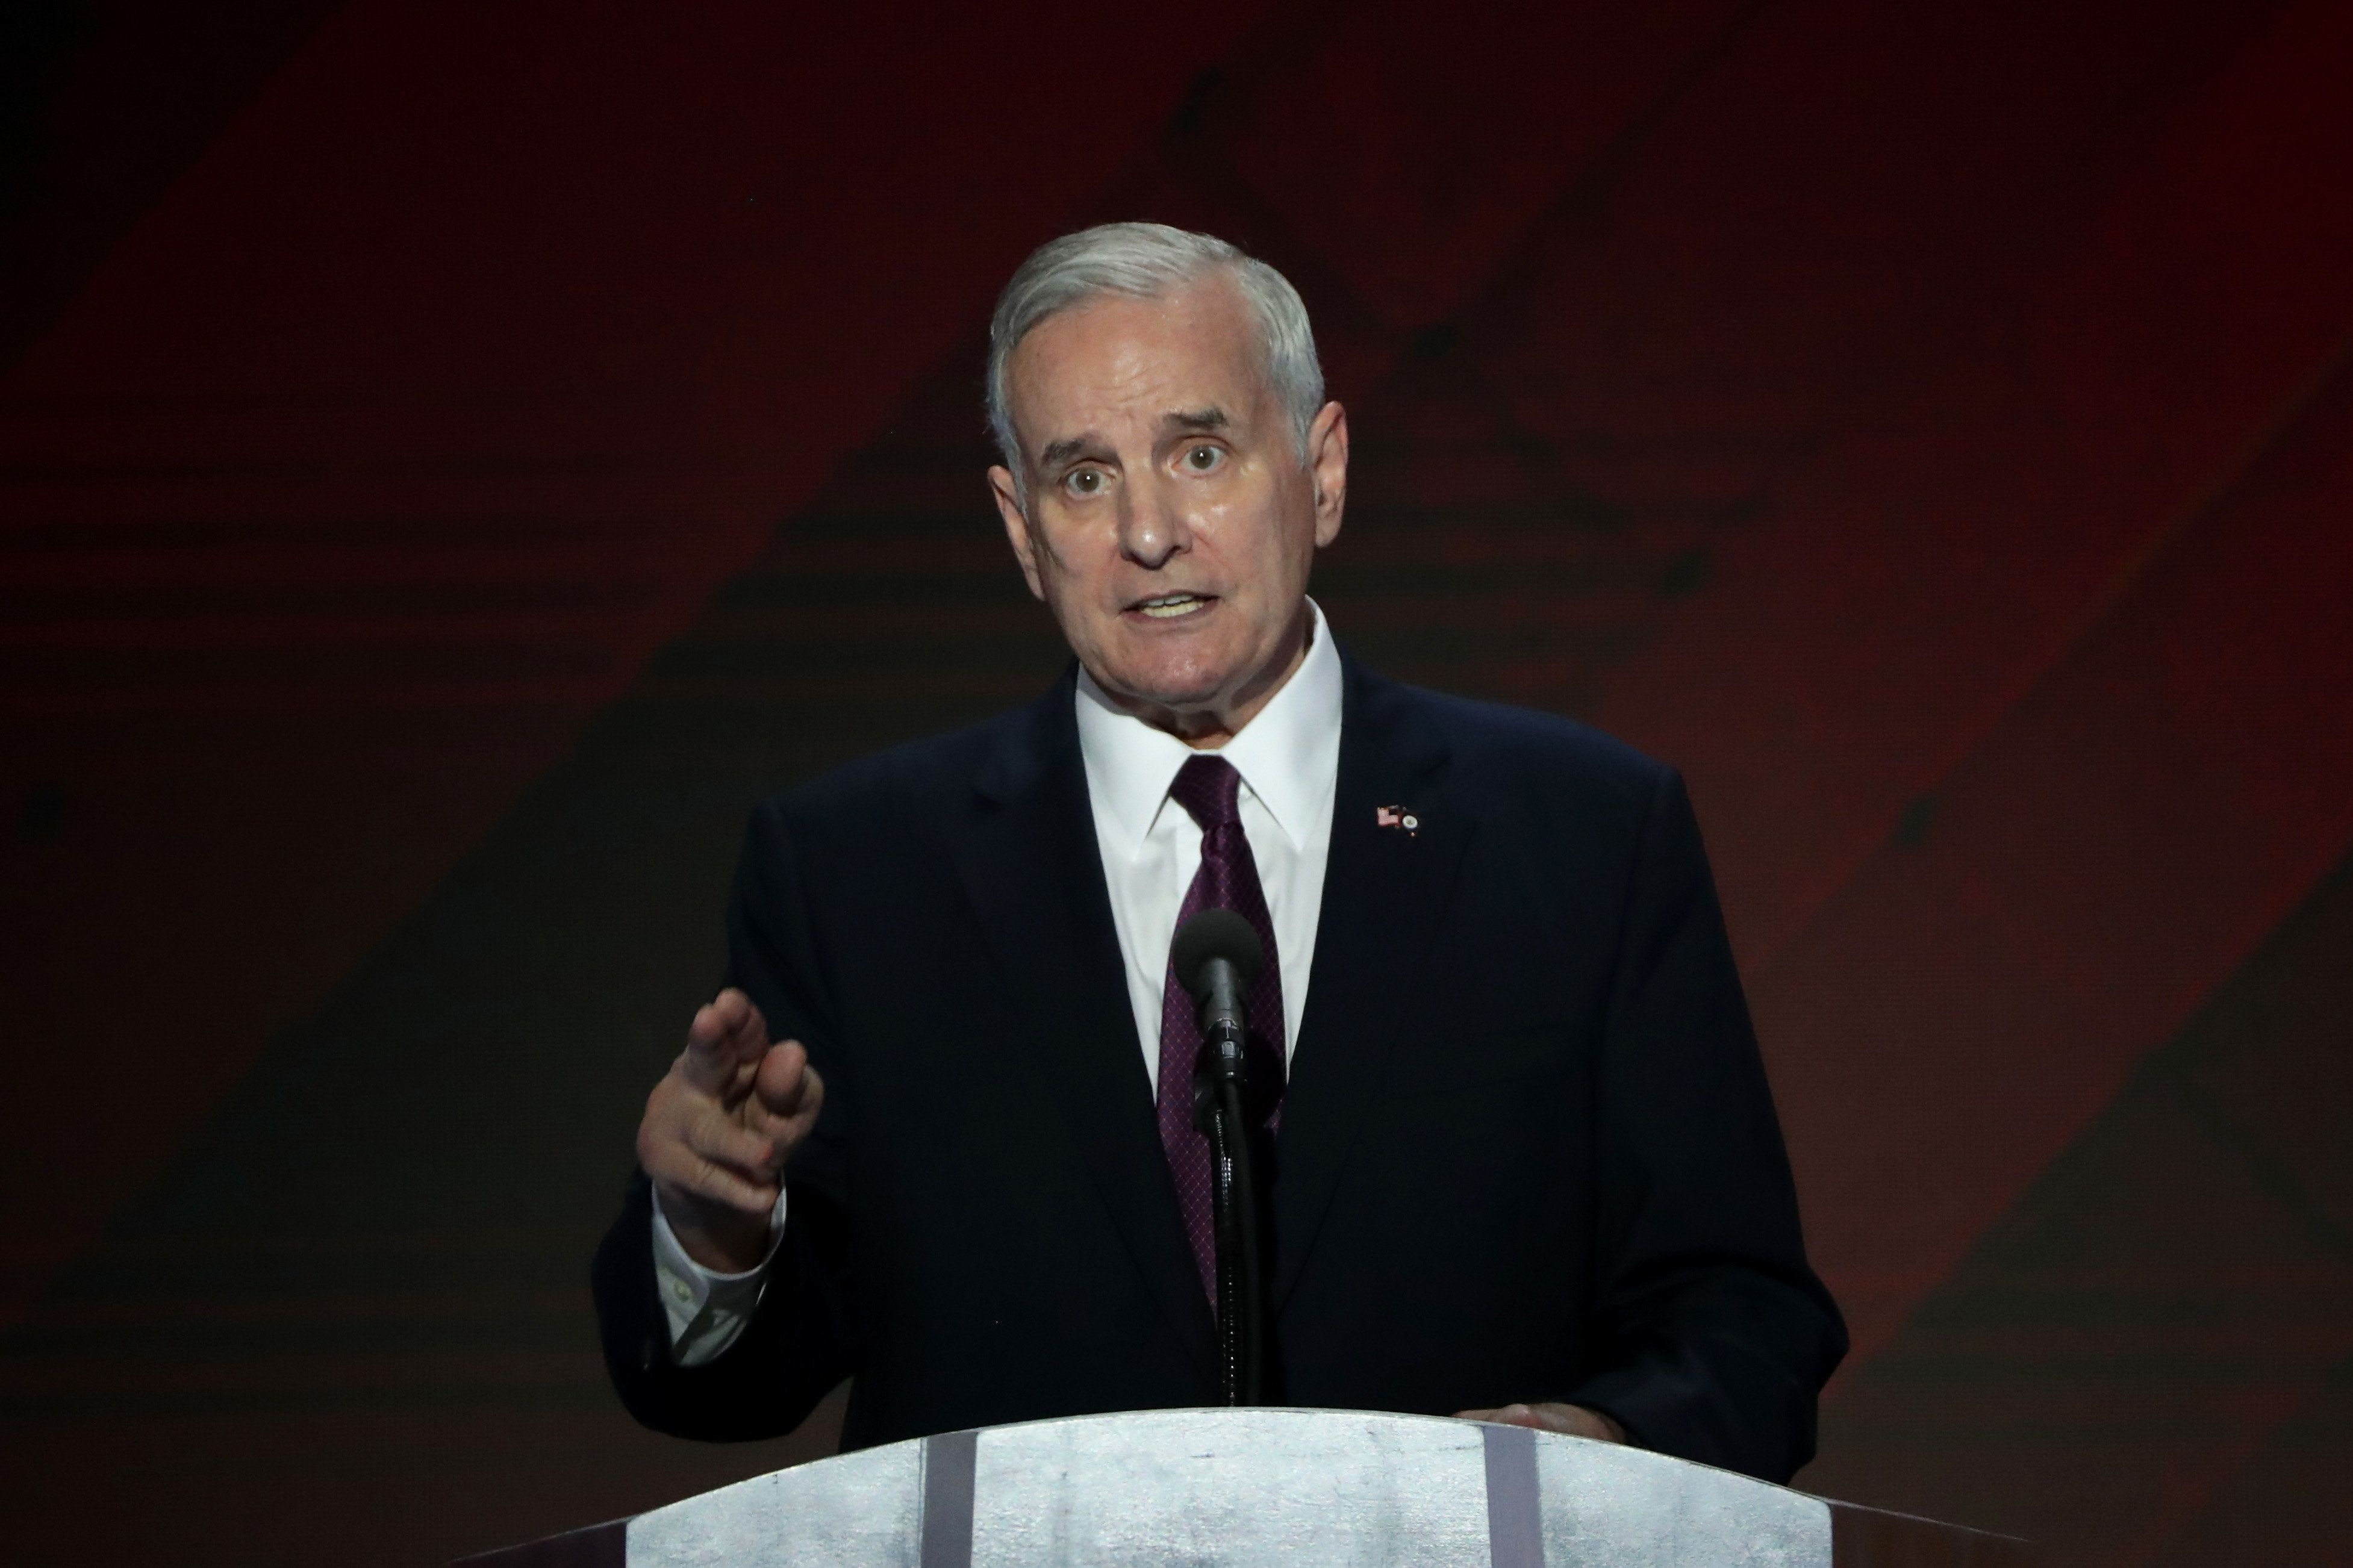 PHILADELPHIA, PA - JULY 28: Minnesota Governor Mark Dayton delivers remarks on the fourth day of the Democratic National Convention at the Wells Fargo Center, July 28, 2016 in Philadelphia, Pennsylvania. Democratic presidential candidate Hillary Clinton received the number of votes needed to secure the party's nomination. An estimated 50,000 people are expected in Philadelphia, including hundreds of protesters and members of the media. The four-day Democratic National Convention kicked off July 25. (Photo by Alex Wong/Getty Images)